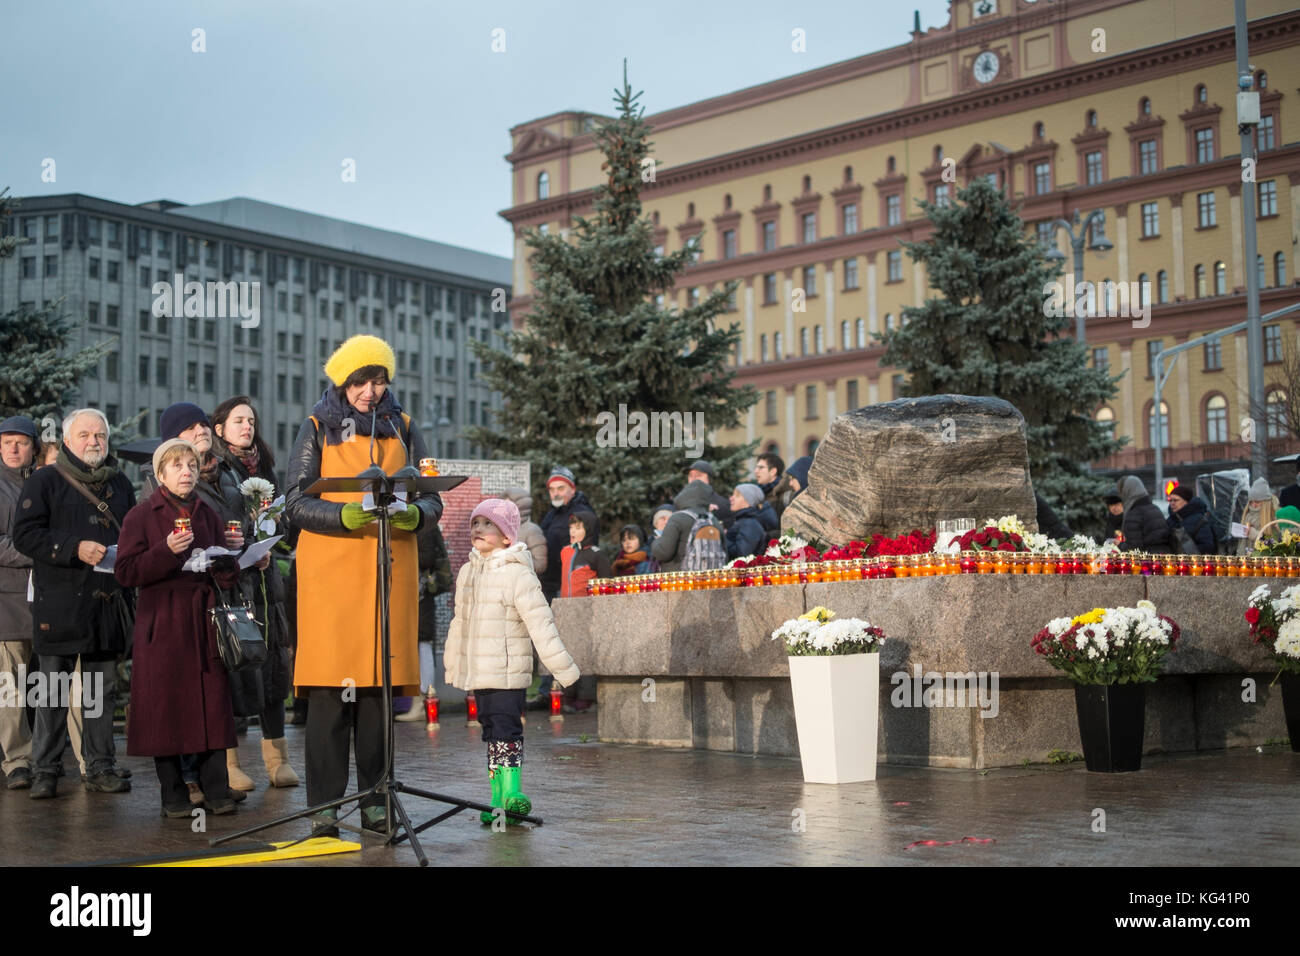 More than 5,000 people took part in a ceremony in Moscow's Lubyanka Square on October 29, 2017, to commemorate - Stock Image